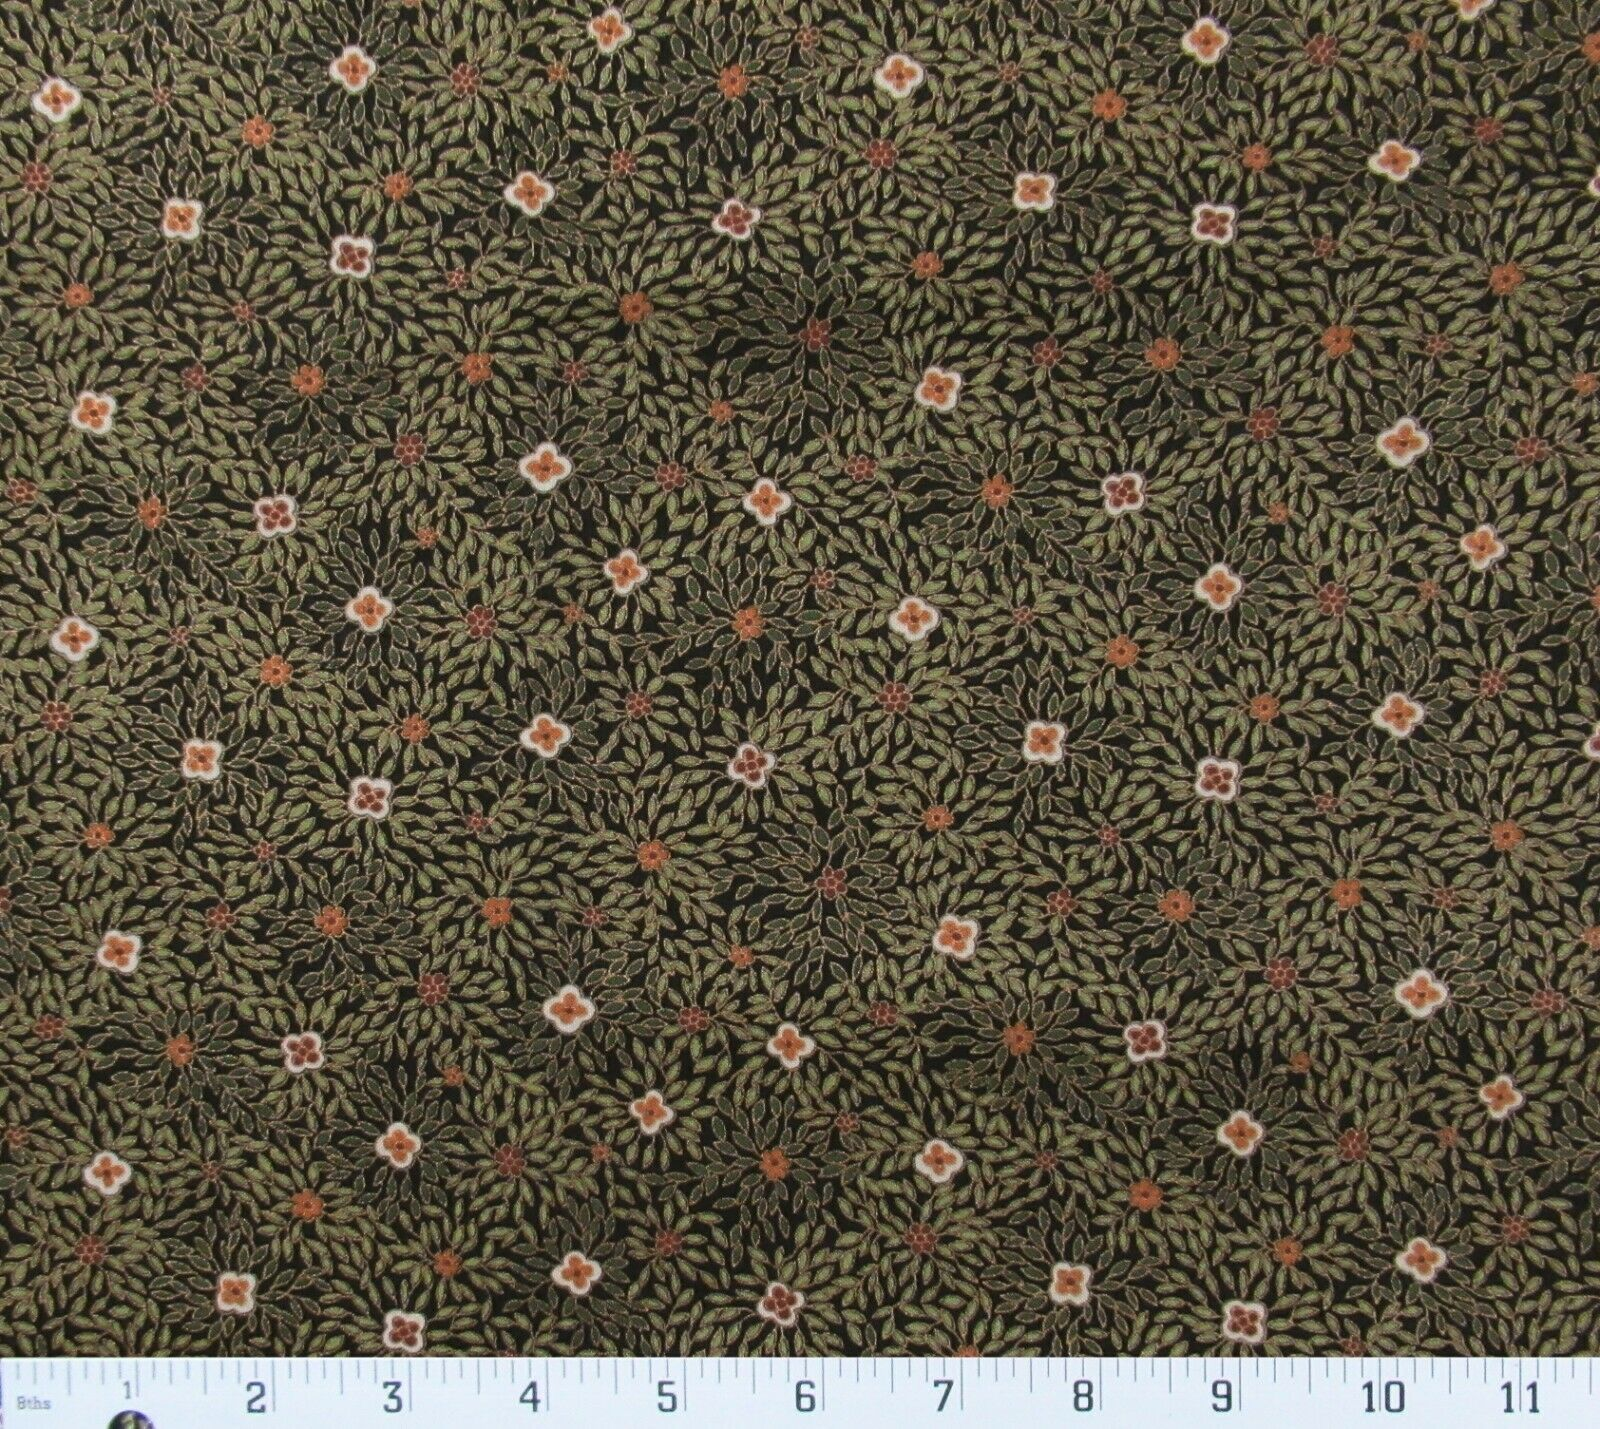 OOP Tropical Trading Floral Metallic Gold Cotton Fabric Olive Green Tan Coral